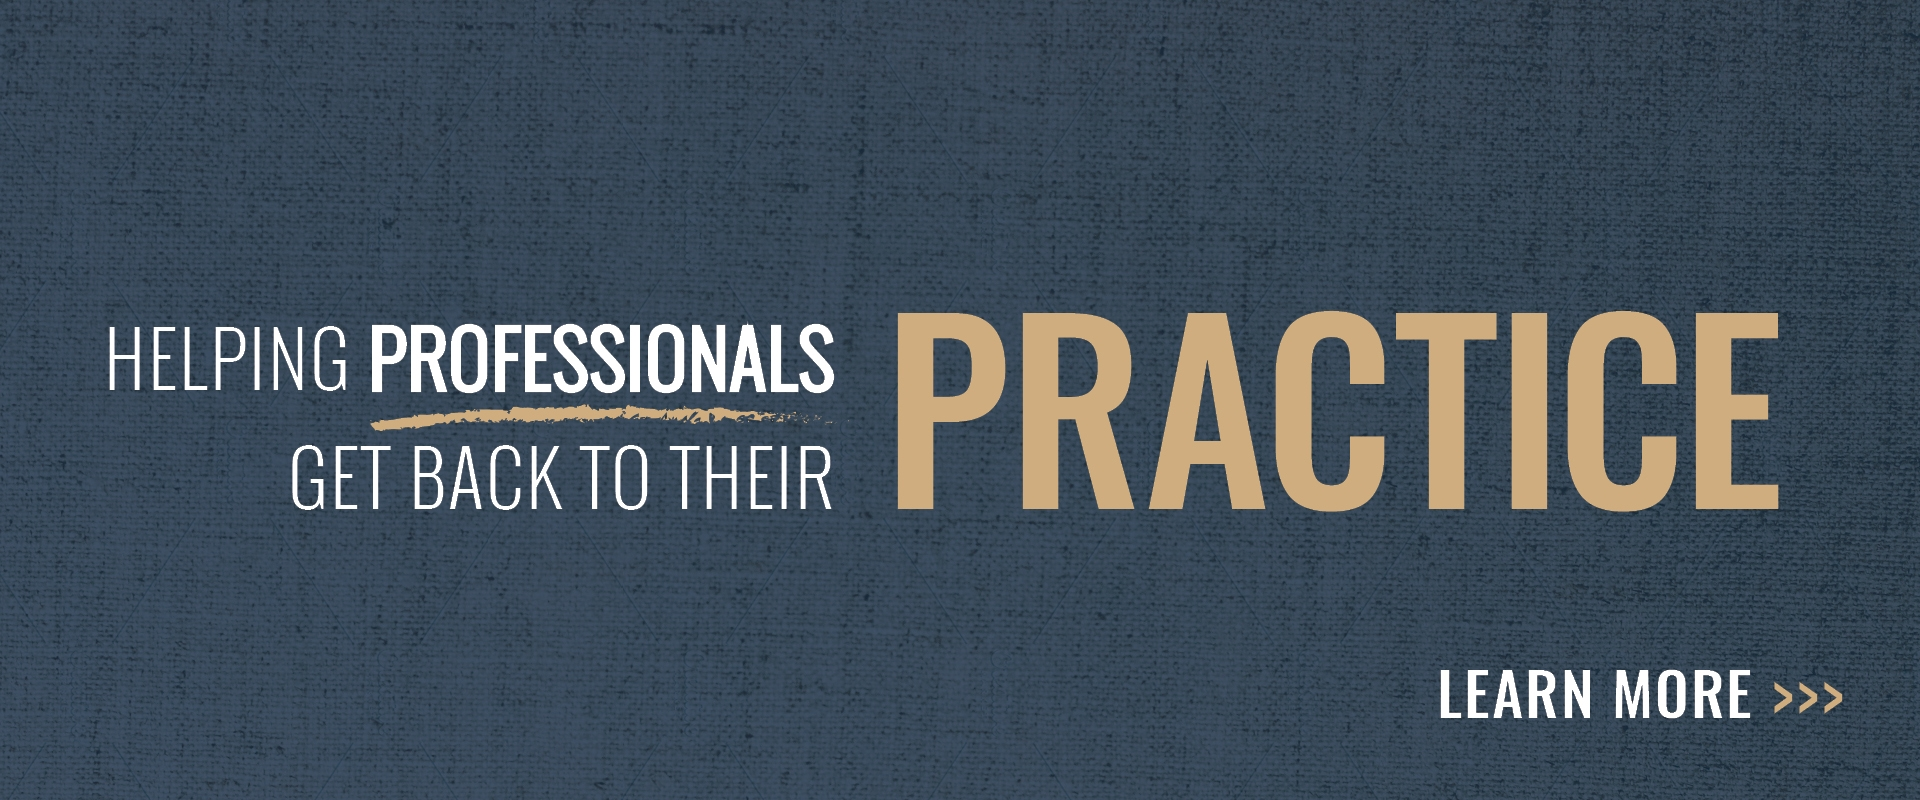 Helping professionals get back to their practice Banner